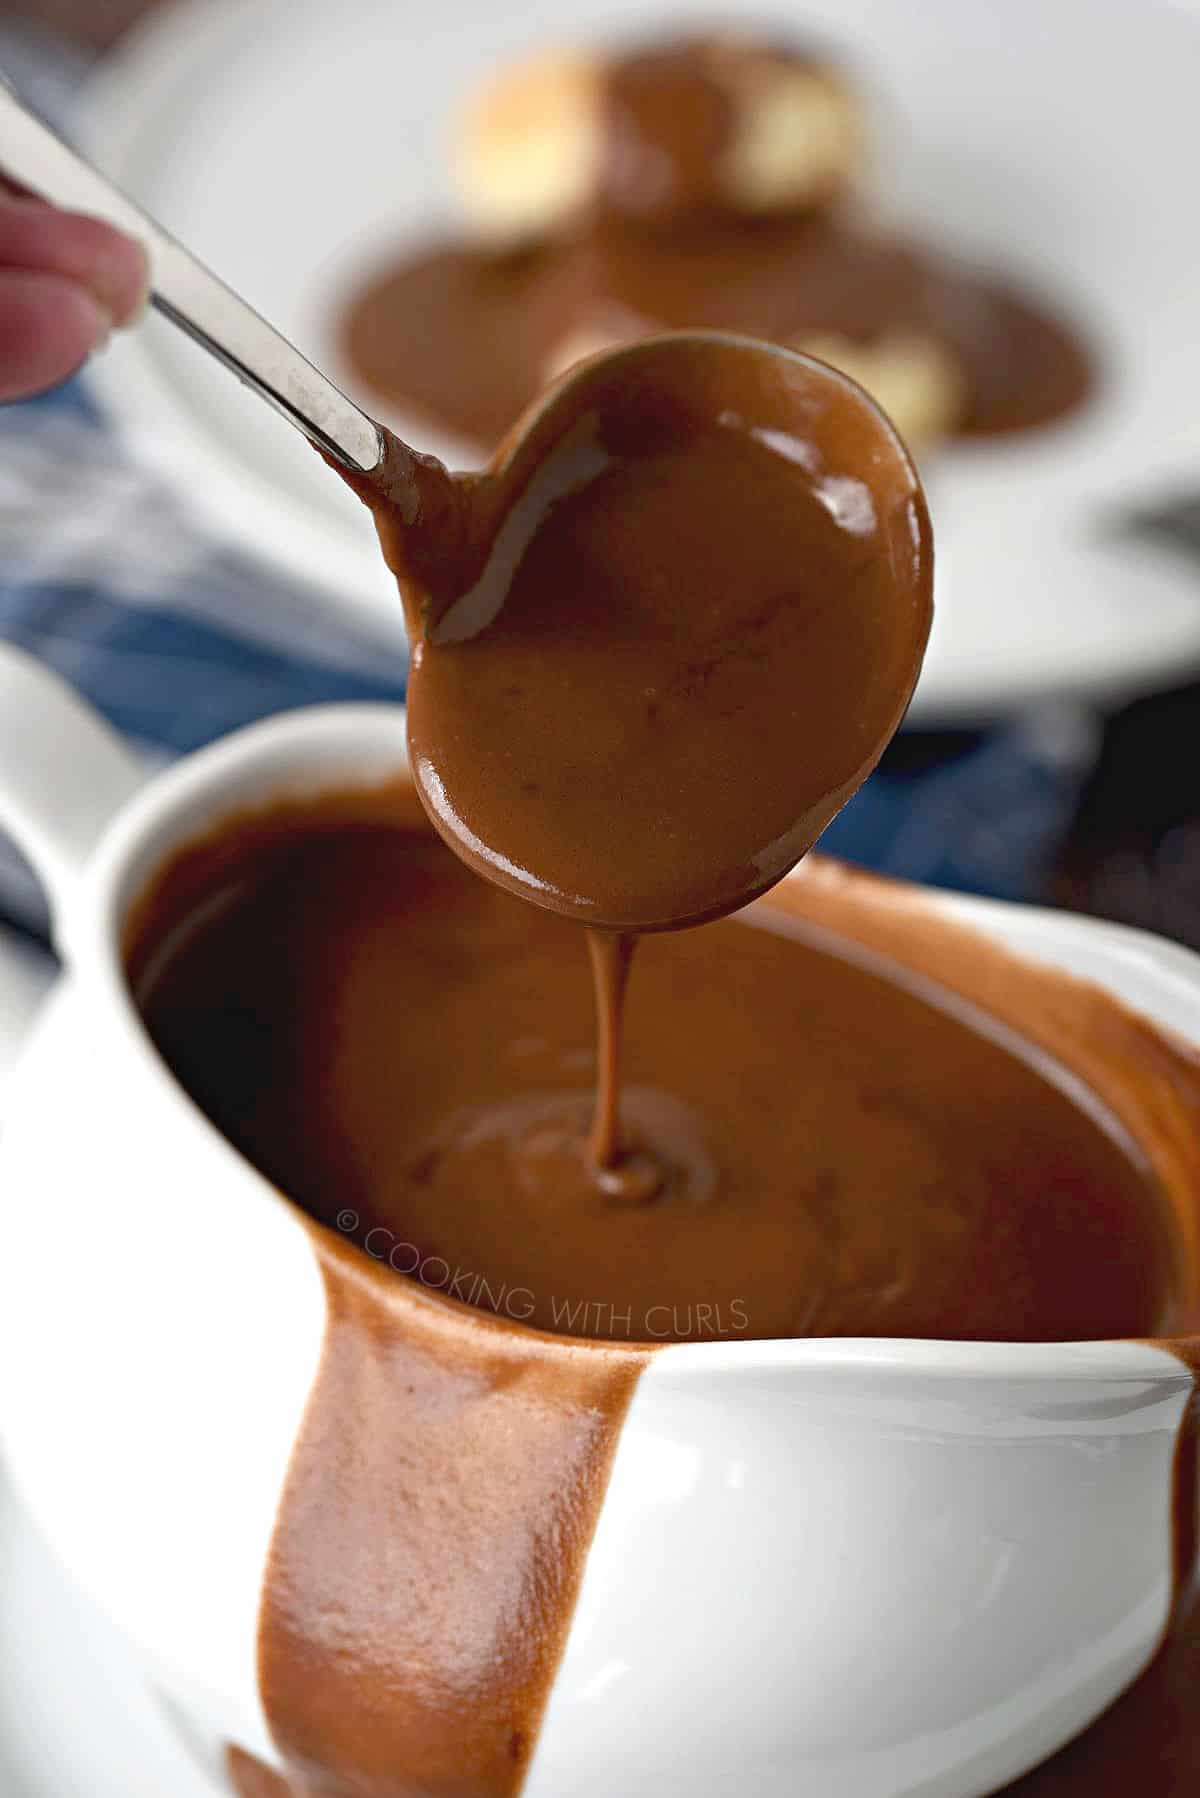 Thick, chocolate gravy dripping off the edge of a ladle into an overflowing gravy boat.